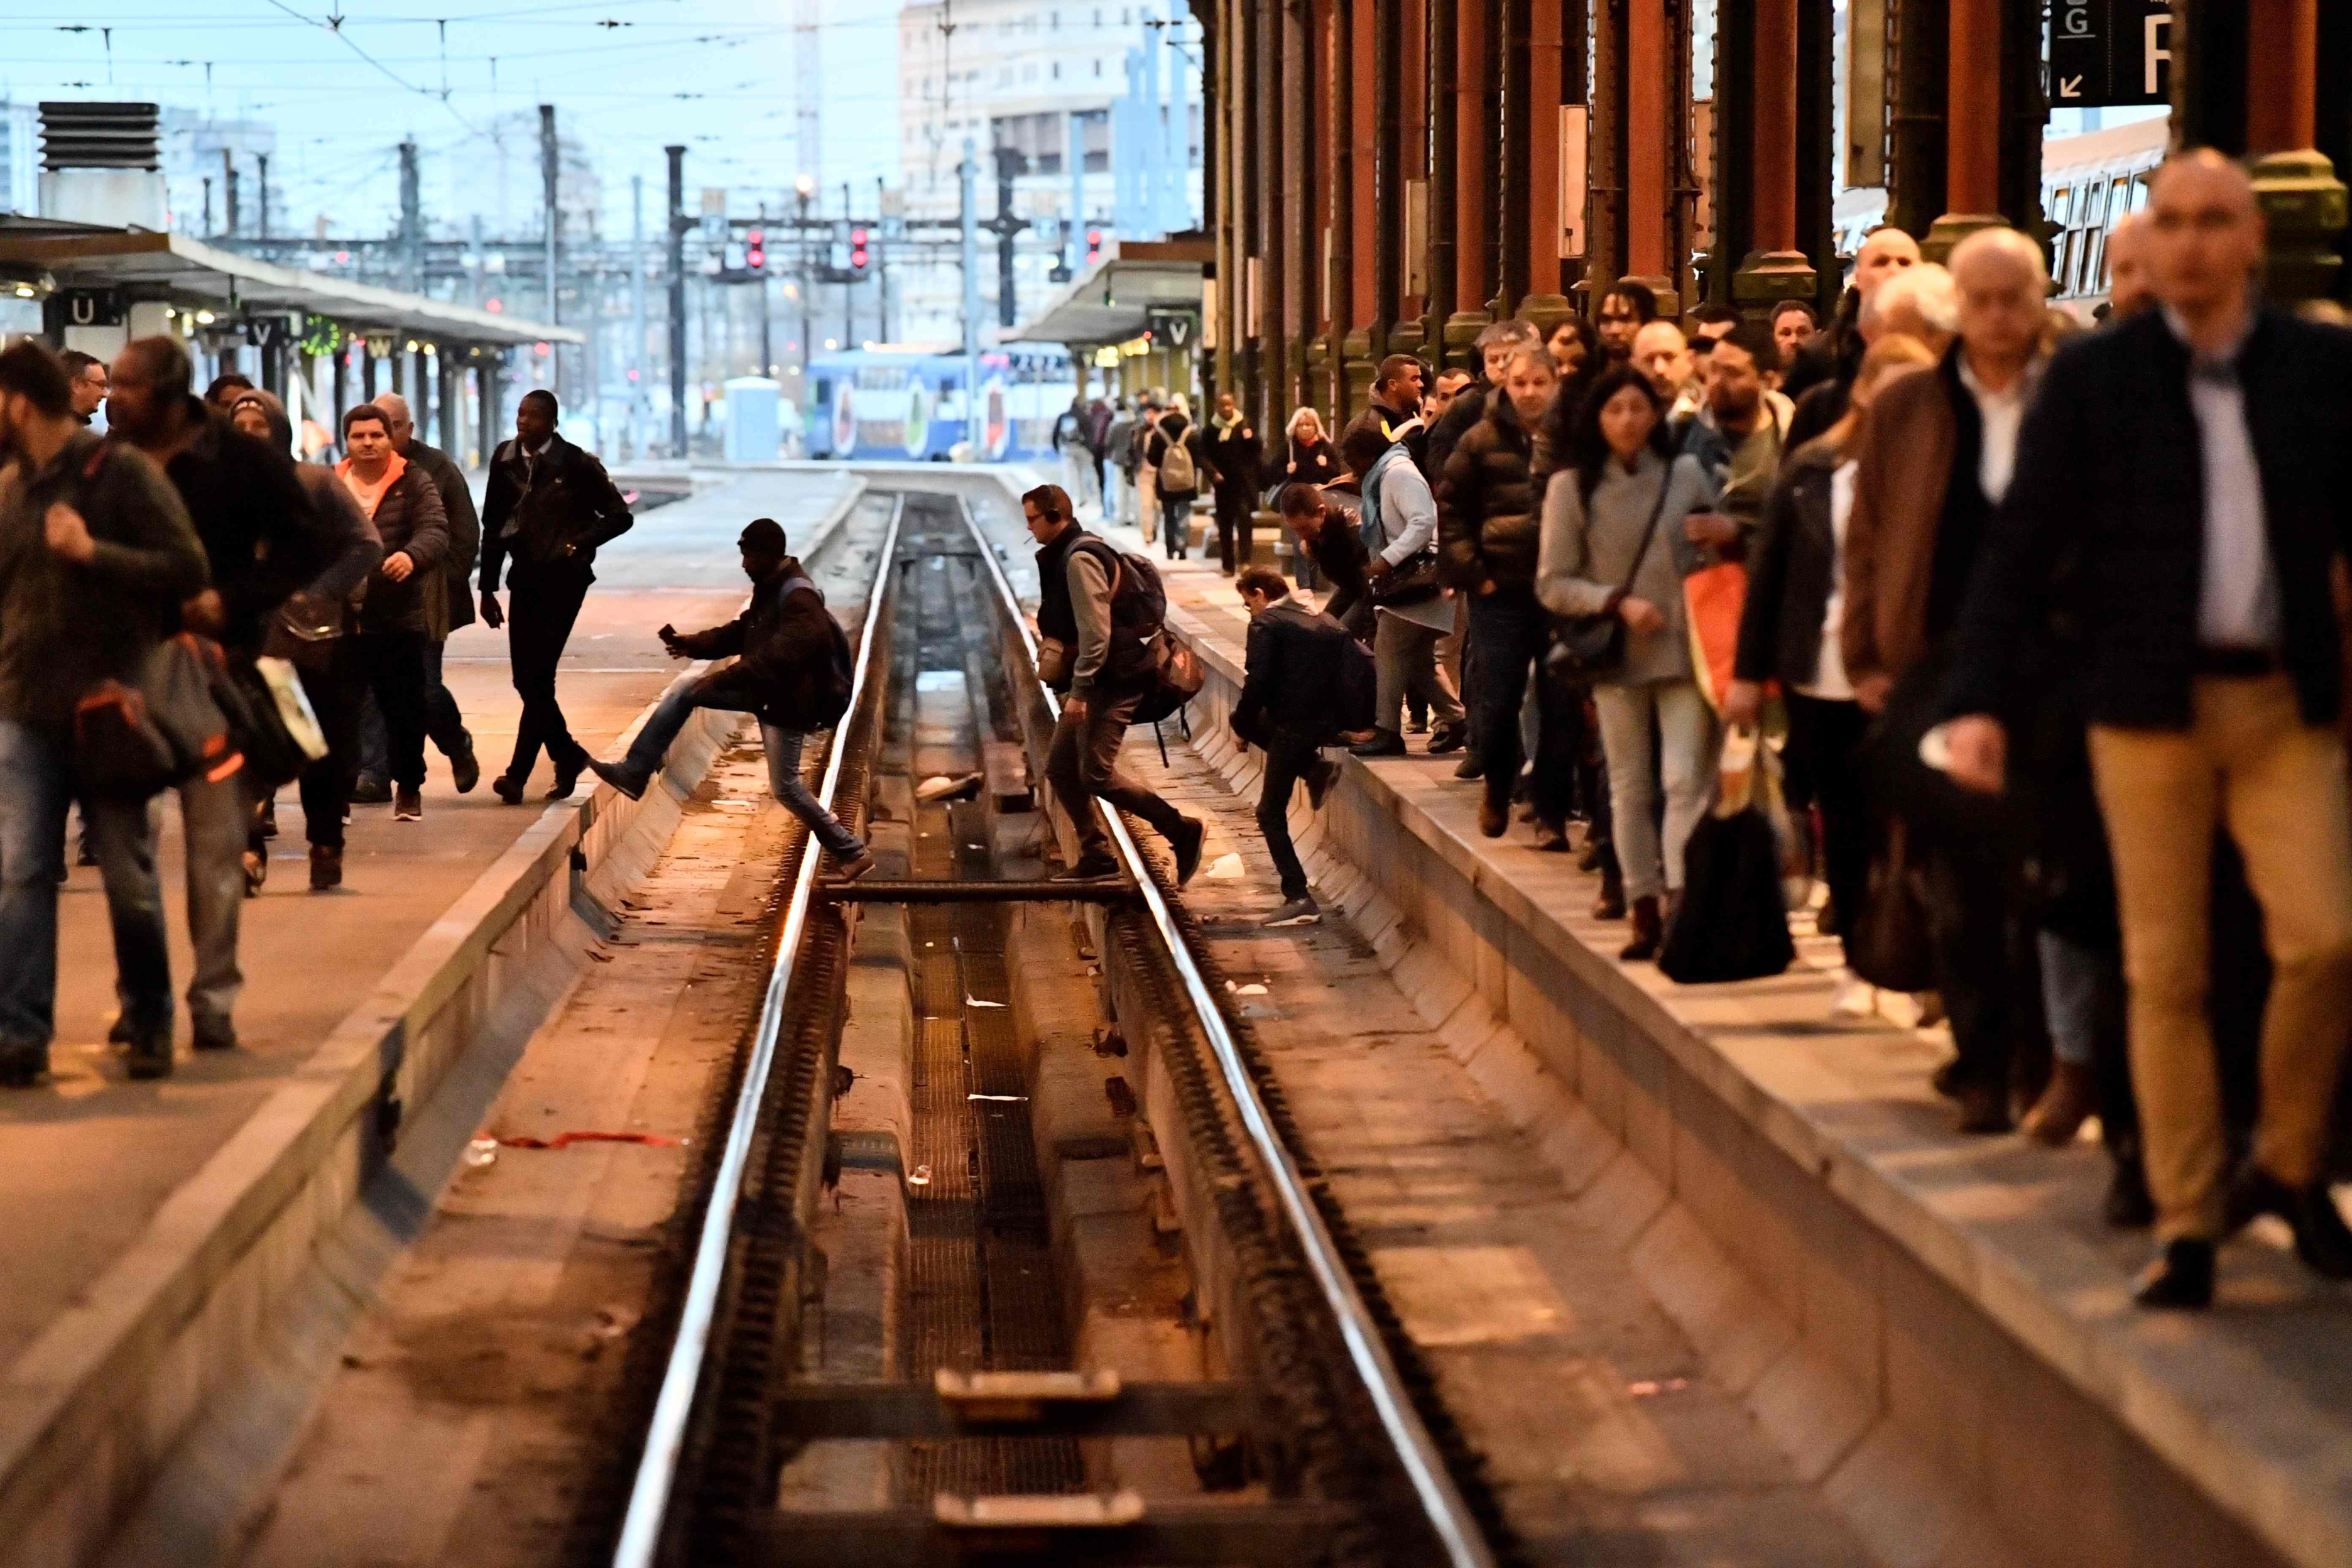 People cross railtracks in Gare de Lyon railway station in Paris on April 3, 2018, at the start of three months of rolling rail strikes.  Staff at state rail operator SNCF walked off the job at 7 pm on April 2, the first in a series of walkouts affect